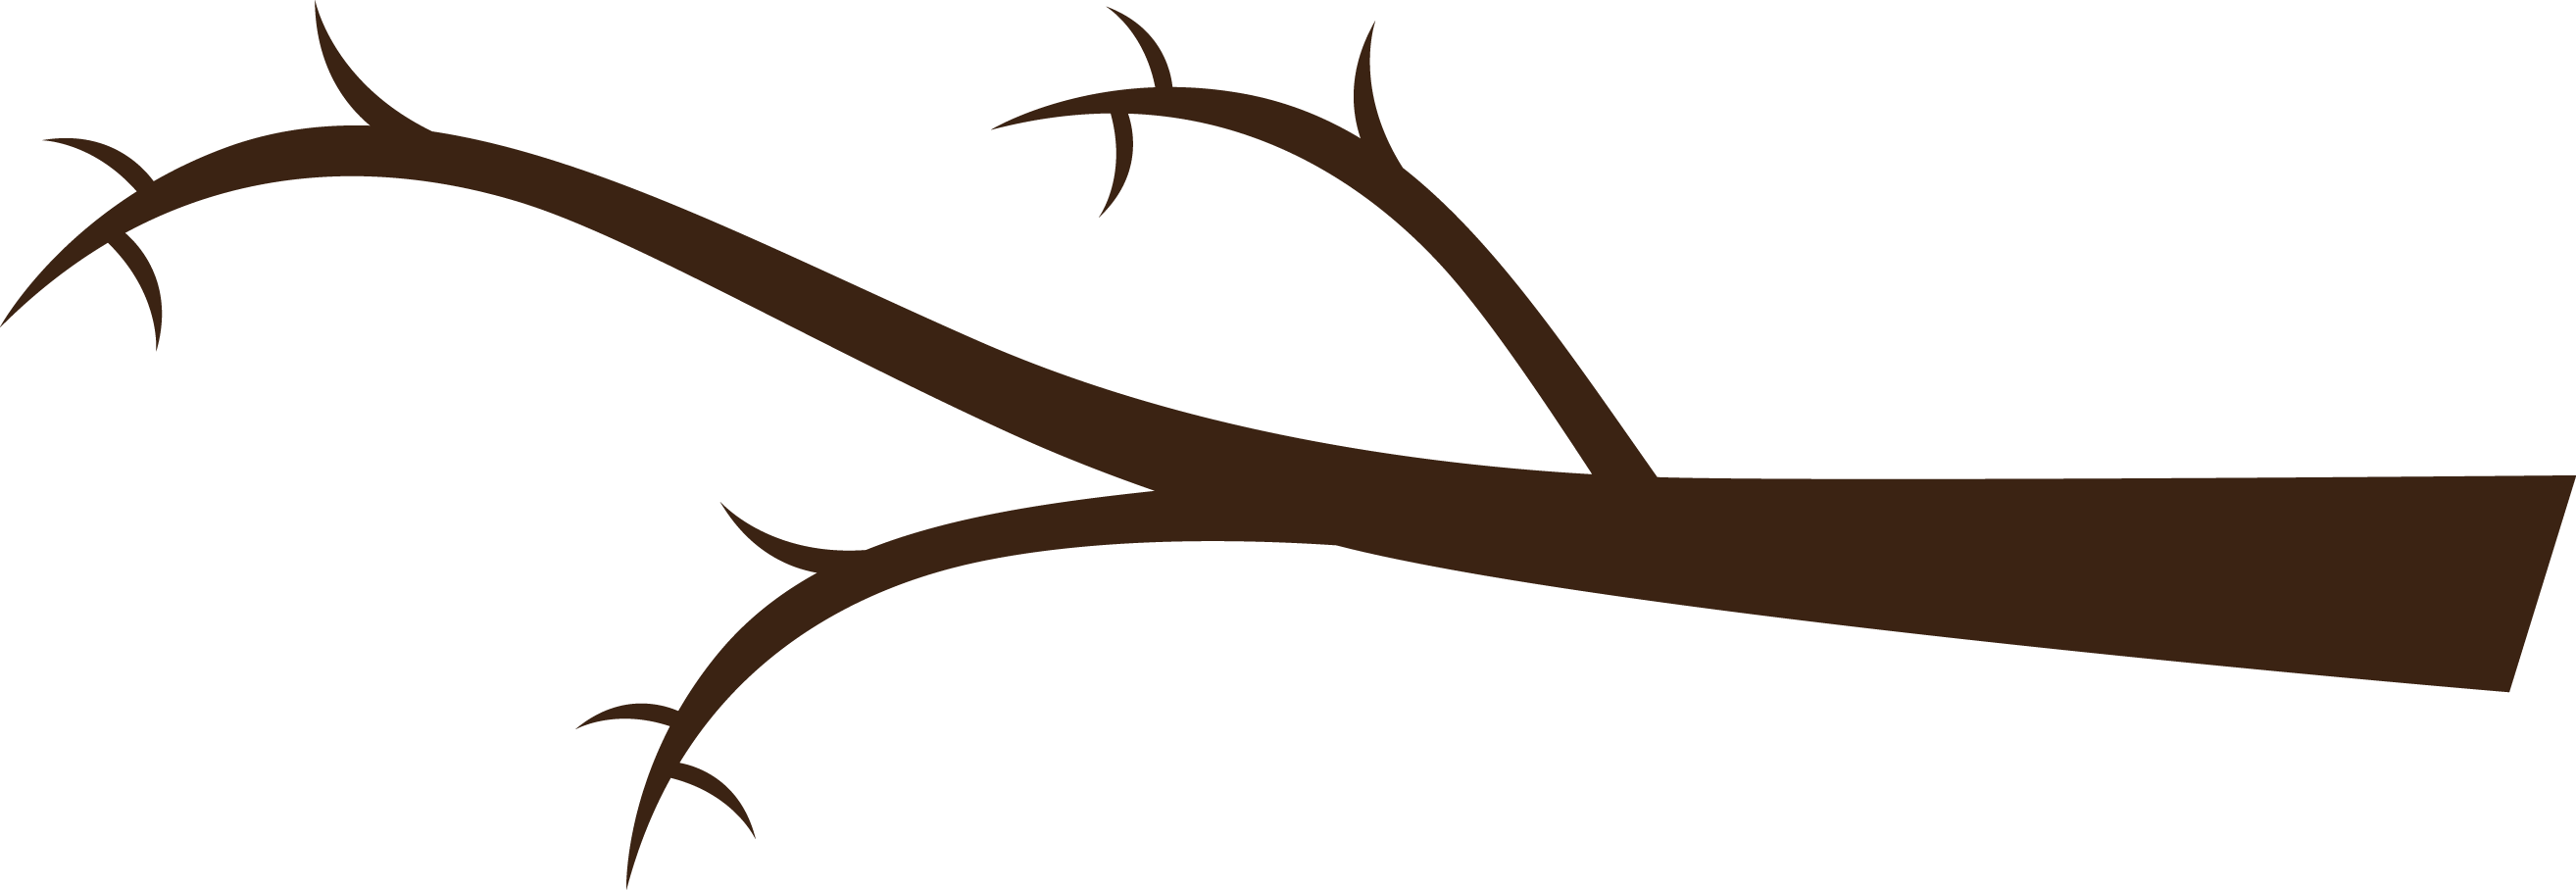 2628x908 Branch Clipart Tree